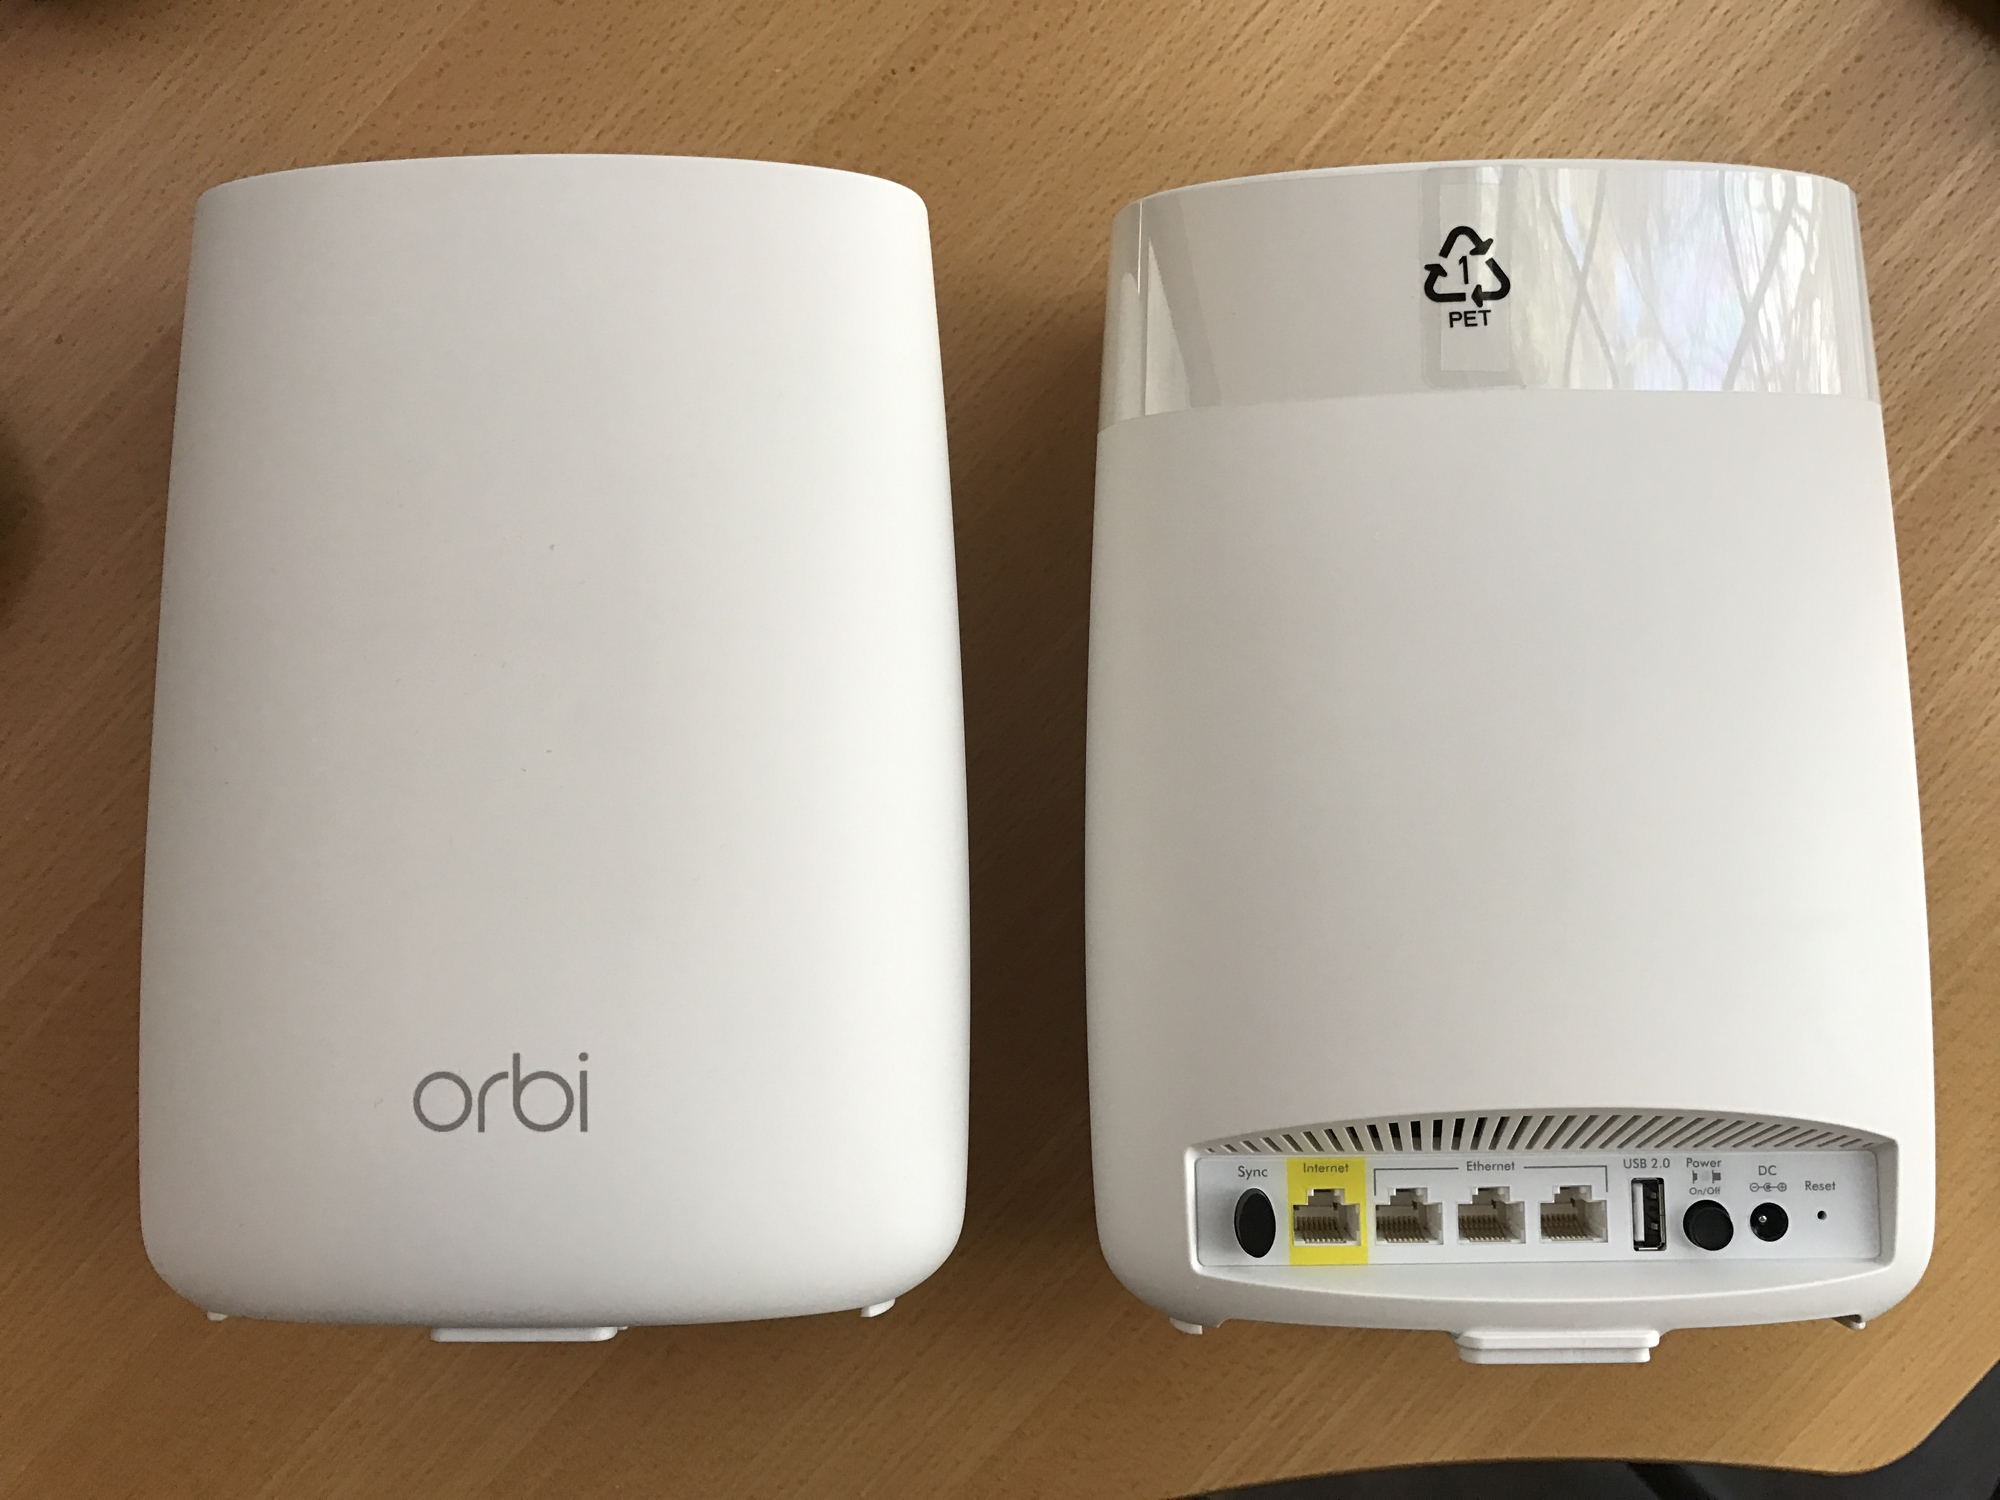 NETGEAR's Orbi has more ports than any other mesh Wi-Fi system we tested